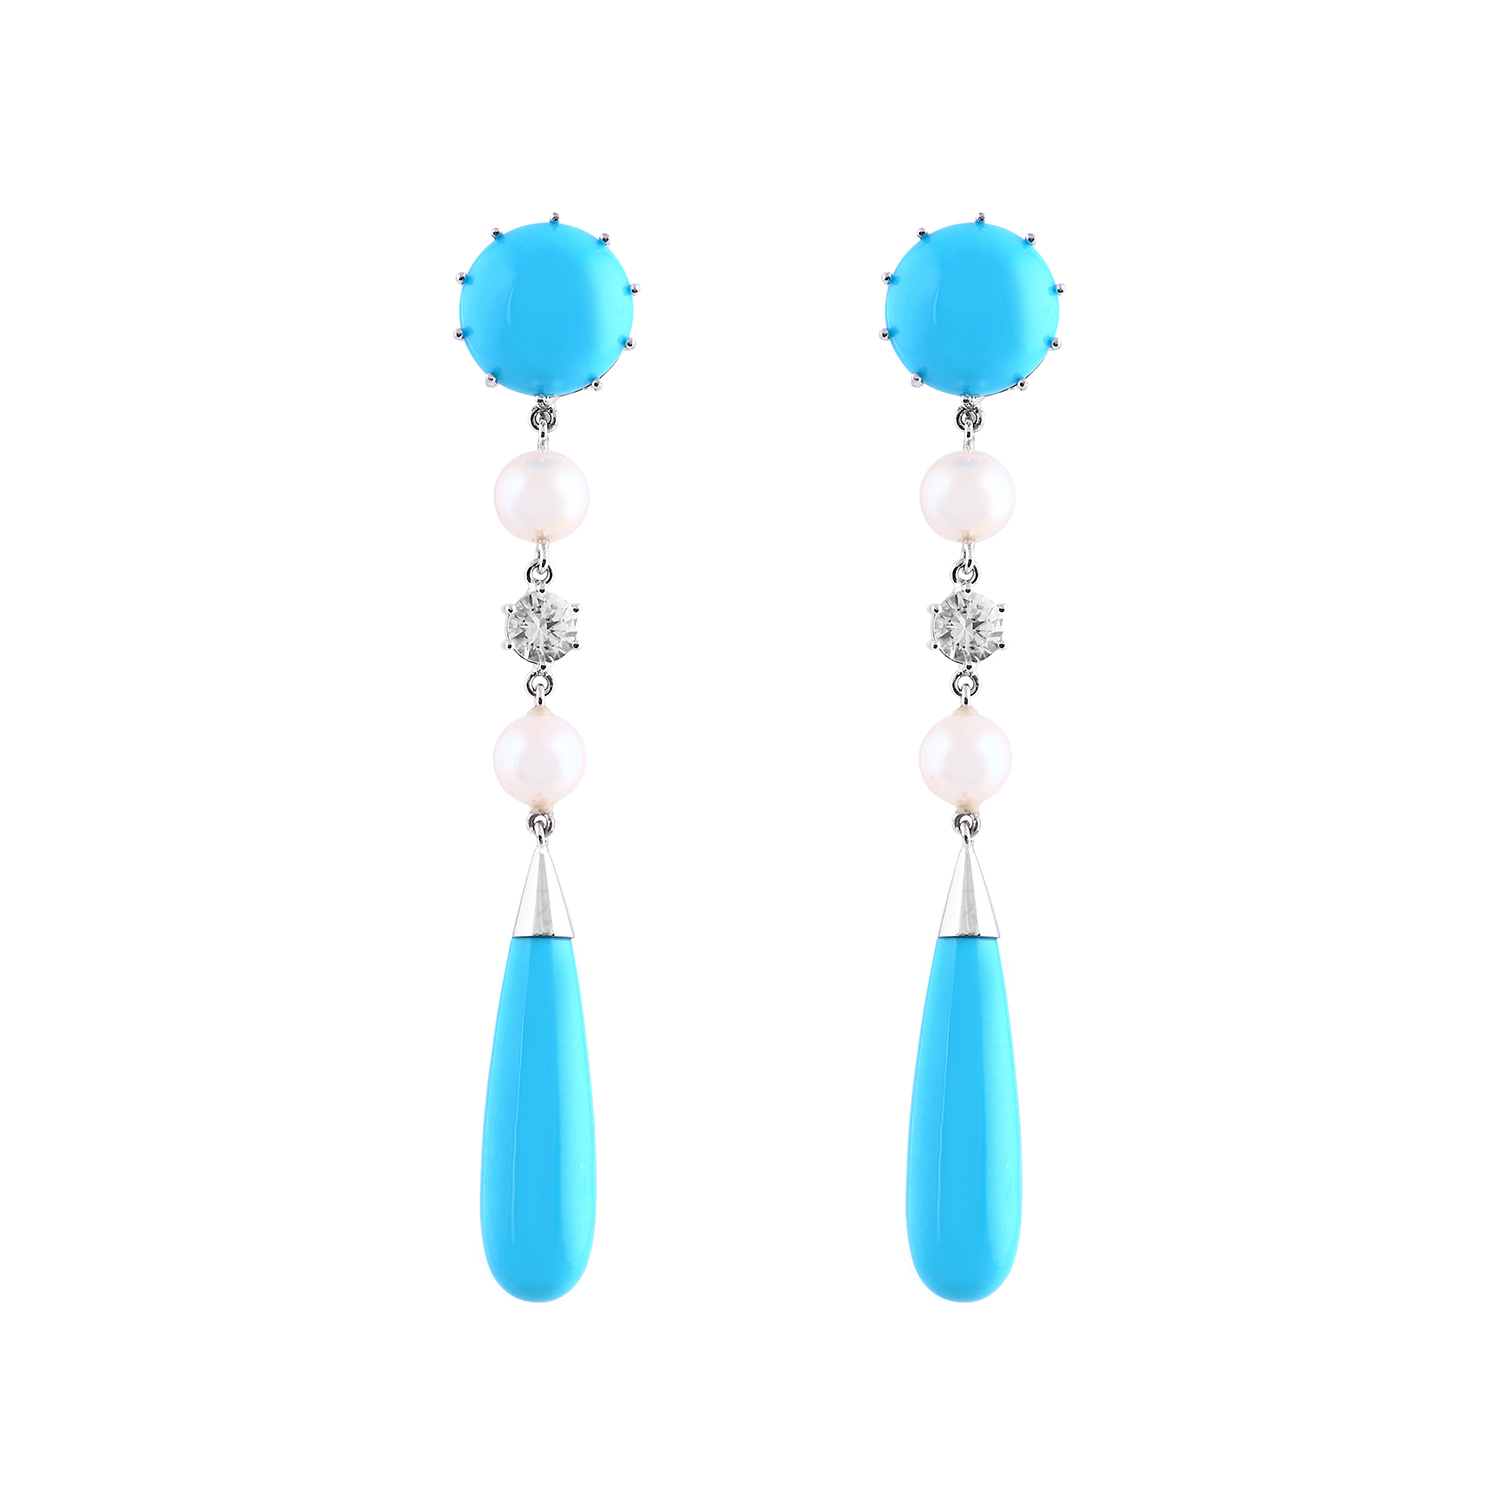 Bespoke Jewellery Singapore Exotic Gems & Jewellery Pte Ltd Turquoise Pearl Diamond Earrings